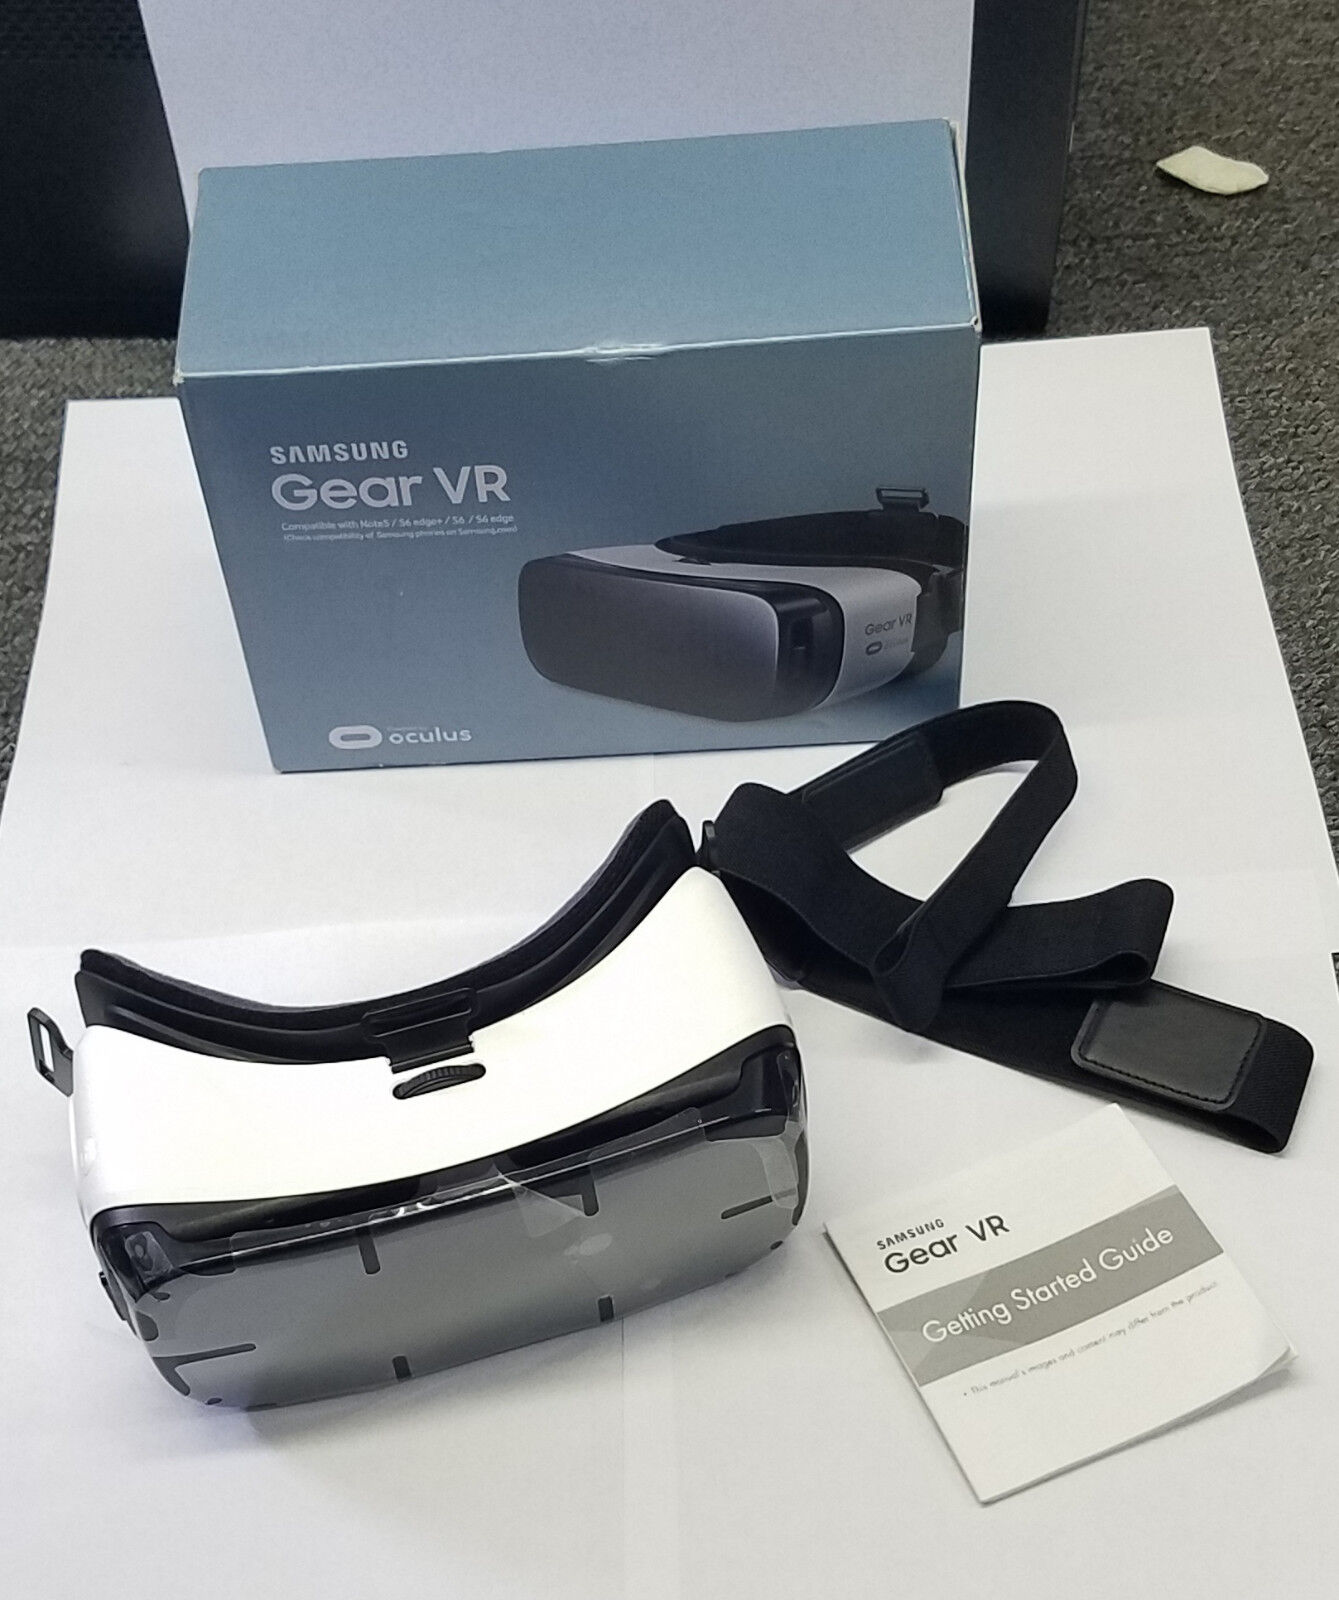 Samsung Gear VR Oculus Virtual Reality Headset 3D Note 5 Galaxy S6, S6 Edge S7